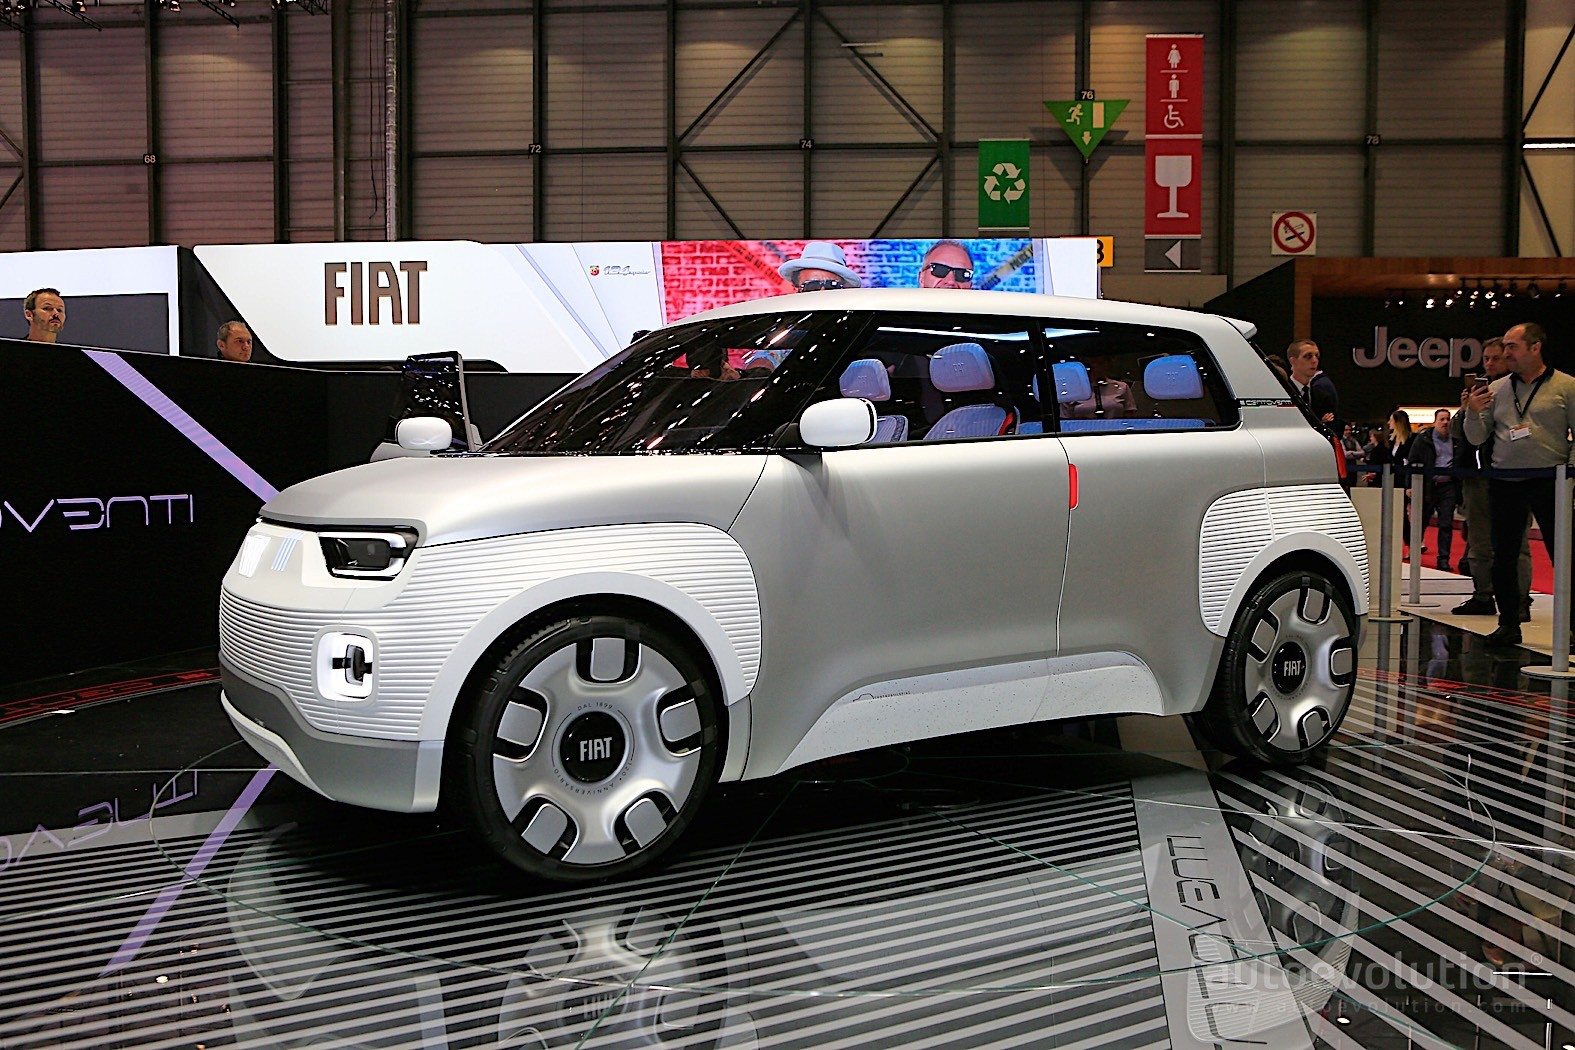 mopar backed fiat centoventi is the epitome of modularitywith the centoventi concept now on display at the geneva motor show, fiat plans to change that in essence, the company intends to build a car as simple as